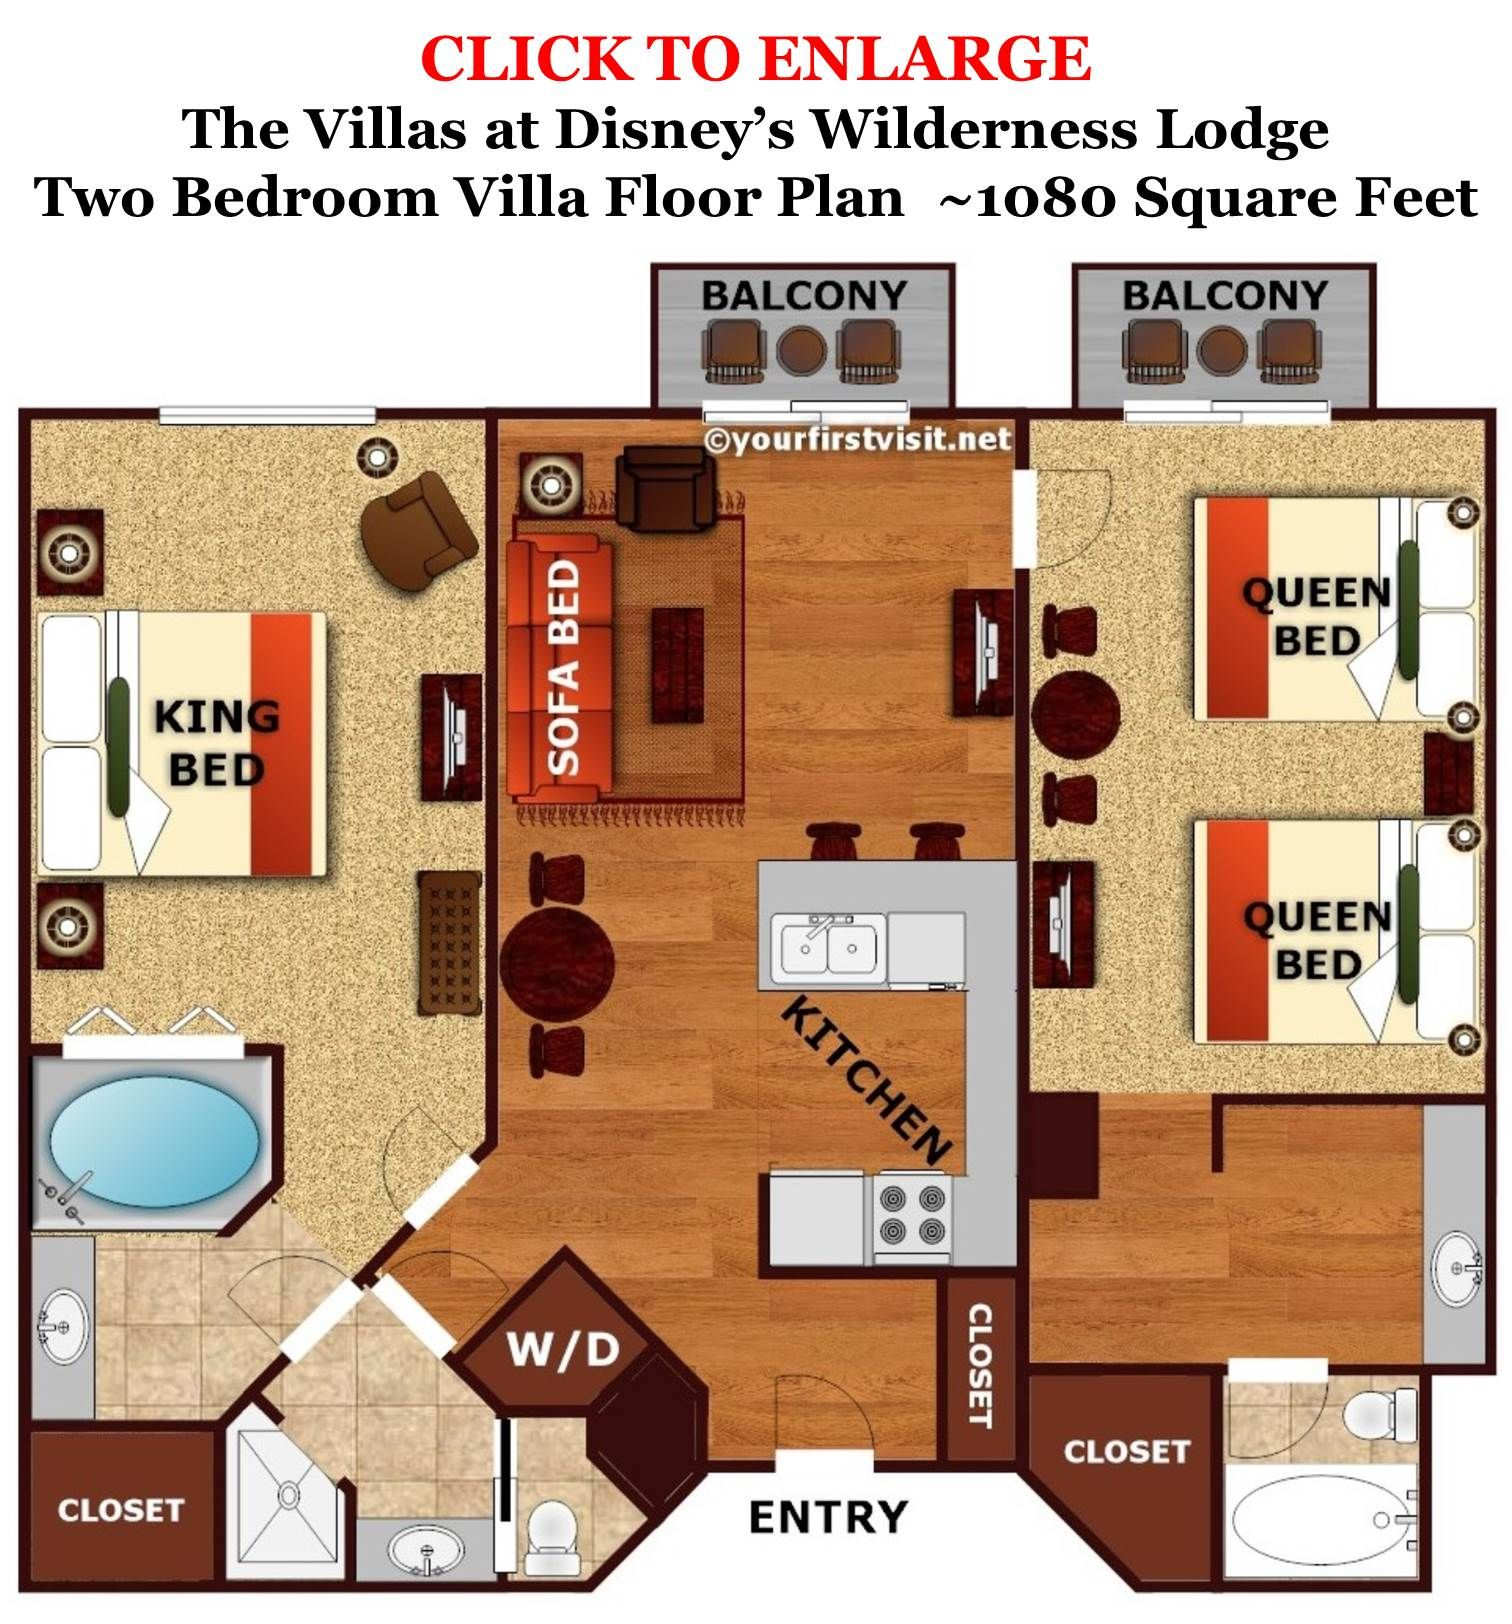 The Master Bedroom And Bath Area Of A Boulder Ridge Villa At Disney S Wilderness Lodge Yourfirstvisit Net Disney Wilderness Lodge Wilderness Lodge Disney World Tips And Tricks